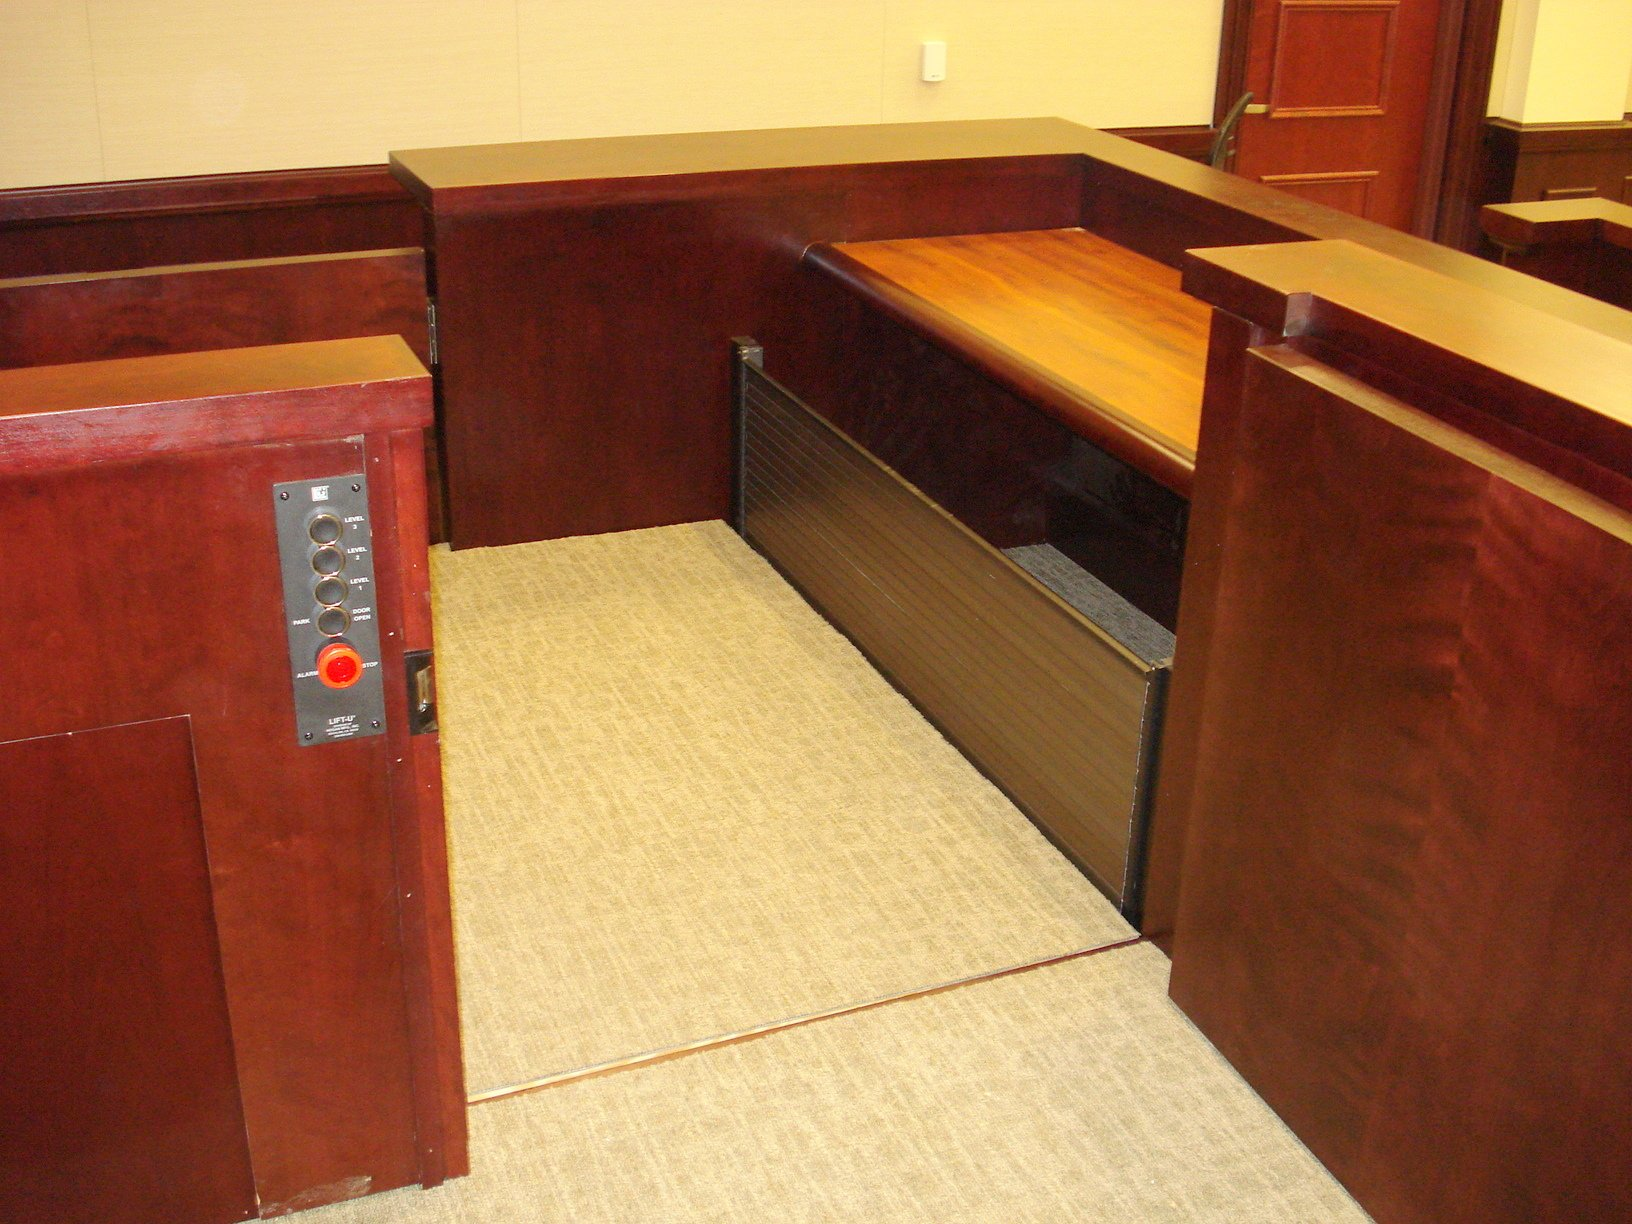 View of the lift from the judge bench. Lift positioned at the upper level with upper level door opened and the lower level door closed. Lift encased in wood millwork blending in with courtroom millwork. Lift is readily available and independently operable.